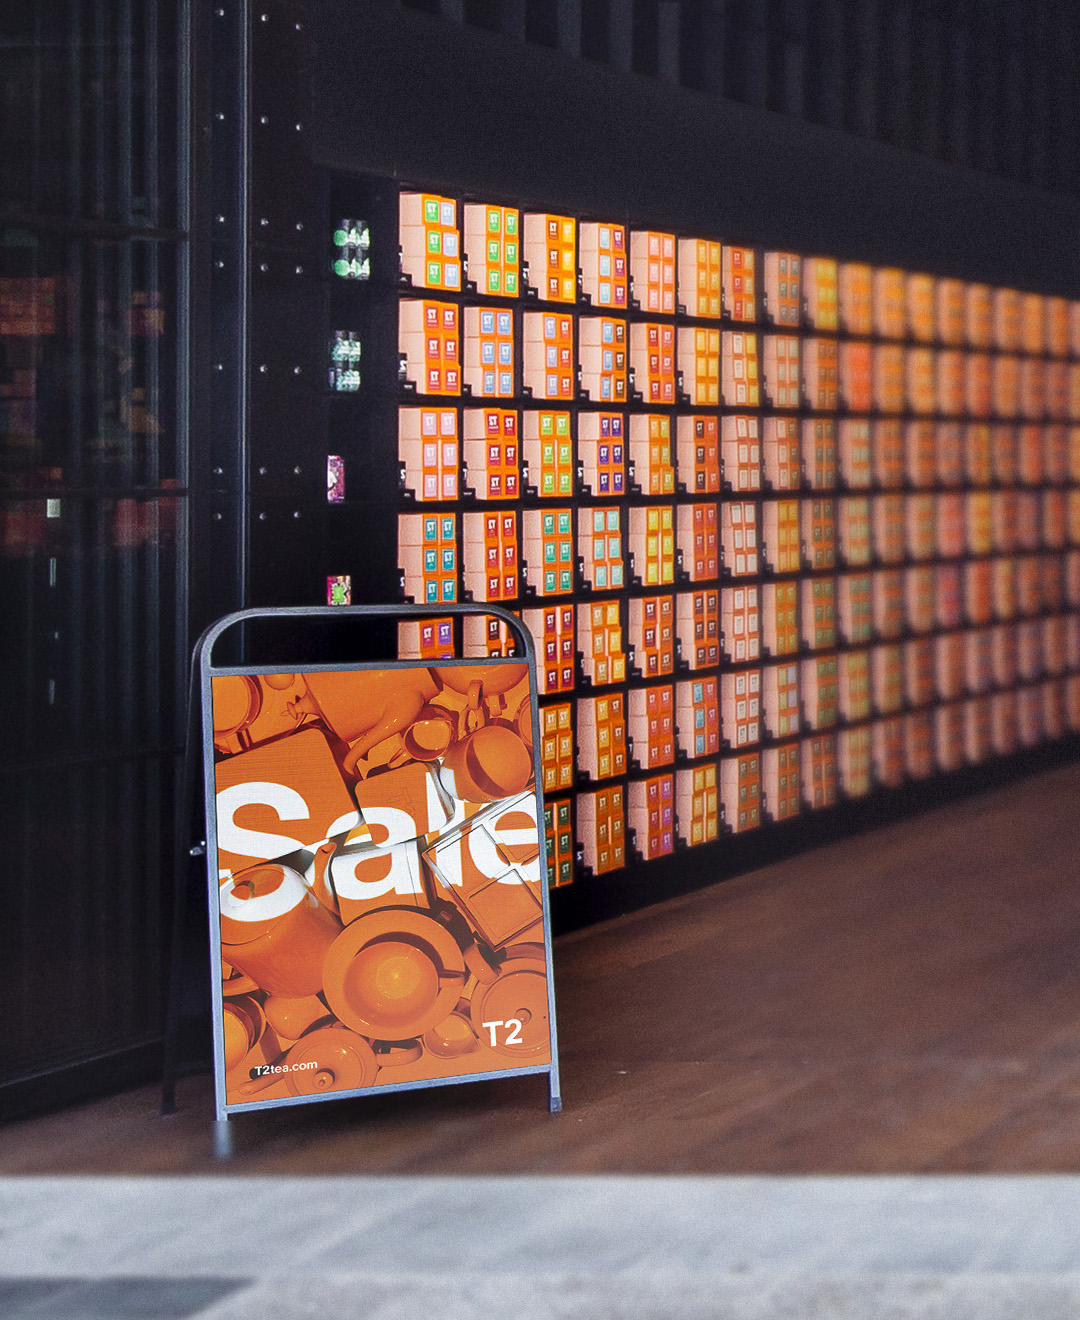 The resulting images were used in digital promotions, printed media and environmental signage across more than eighty stores. -